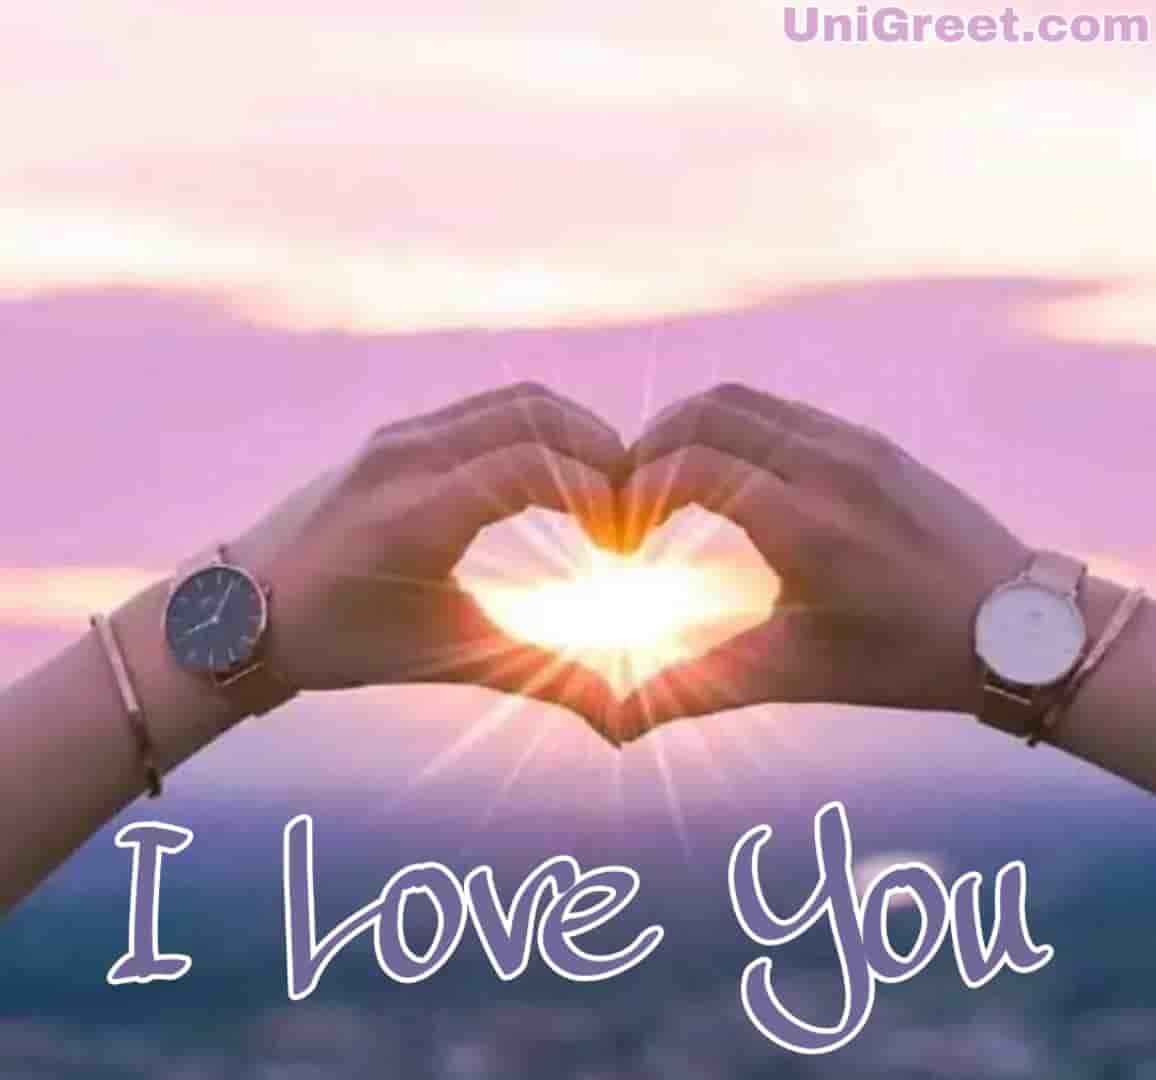 Latest I Love You Images Wallpaper Photos Download For Whatsapp Dp